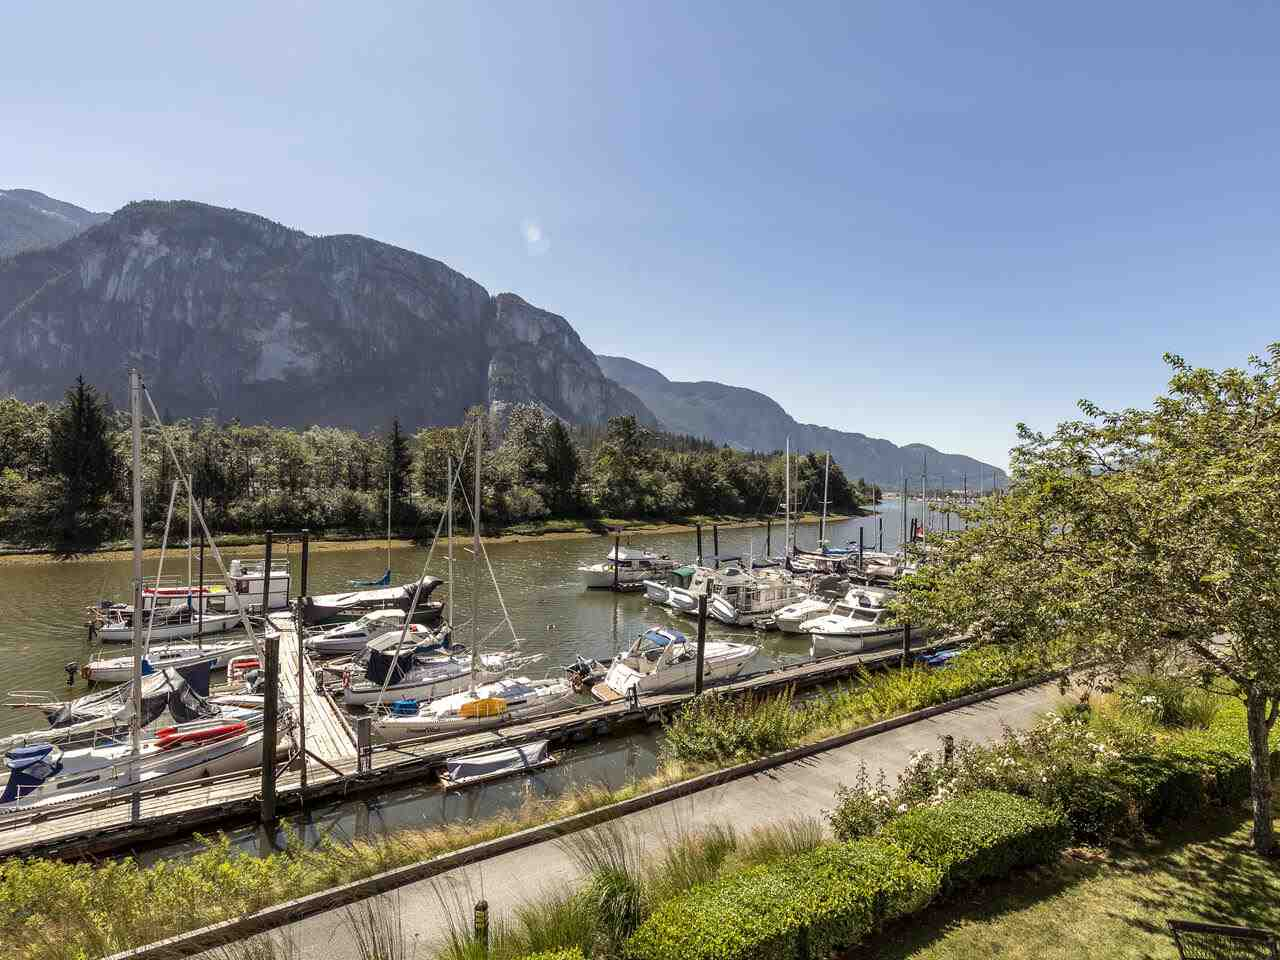 204 1468 PEMBERTON AVENUE, Squamish